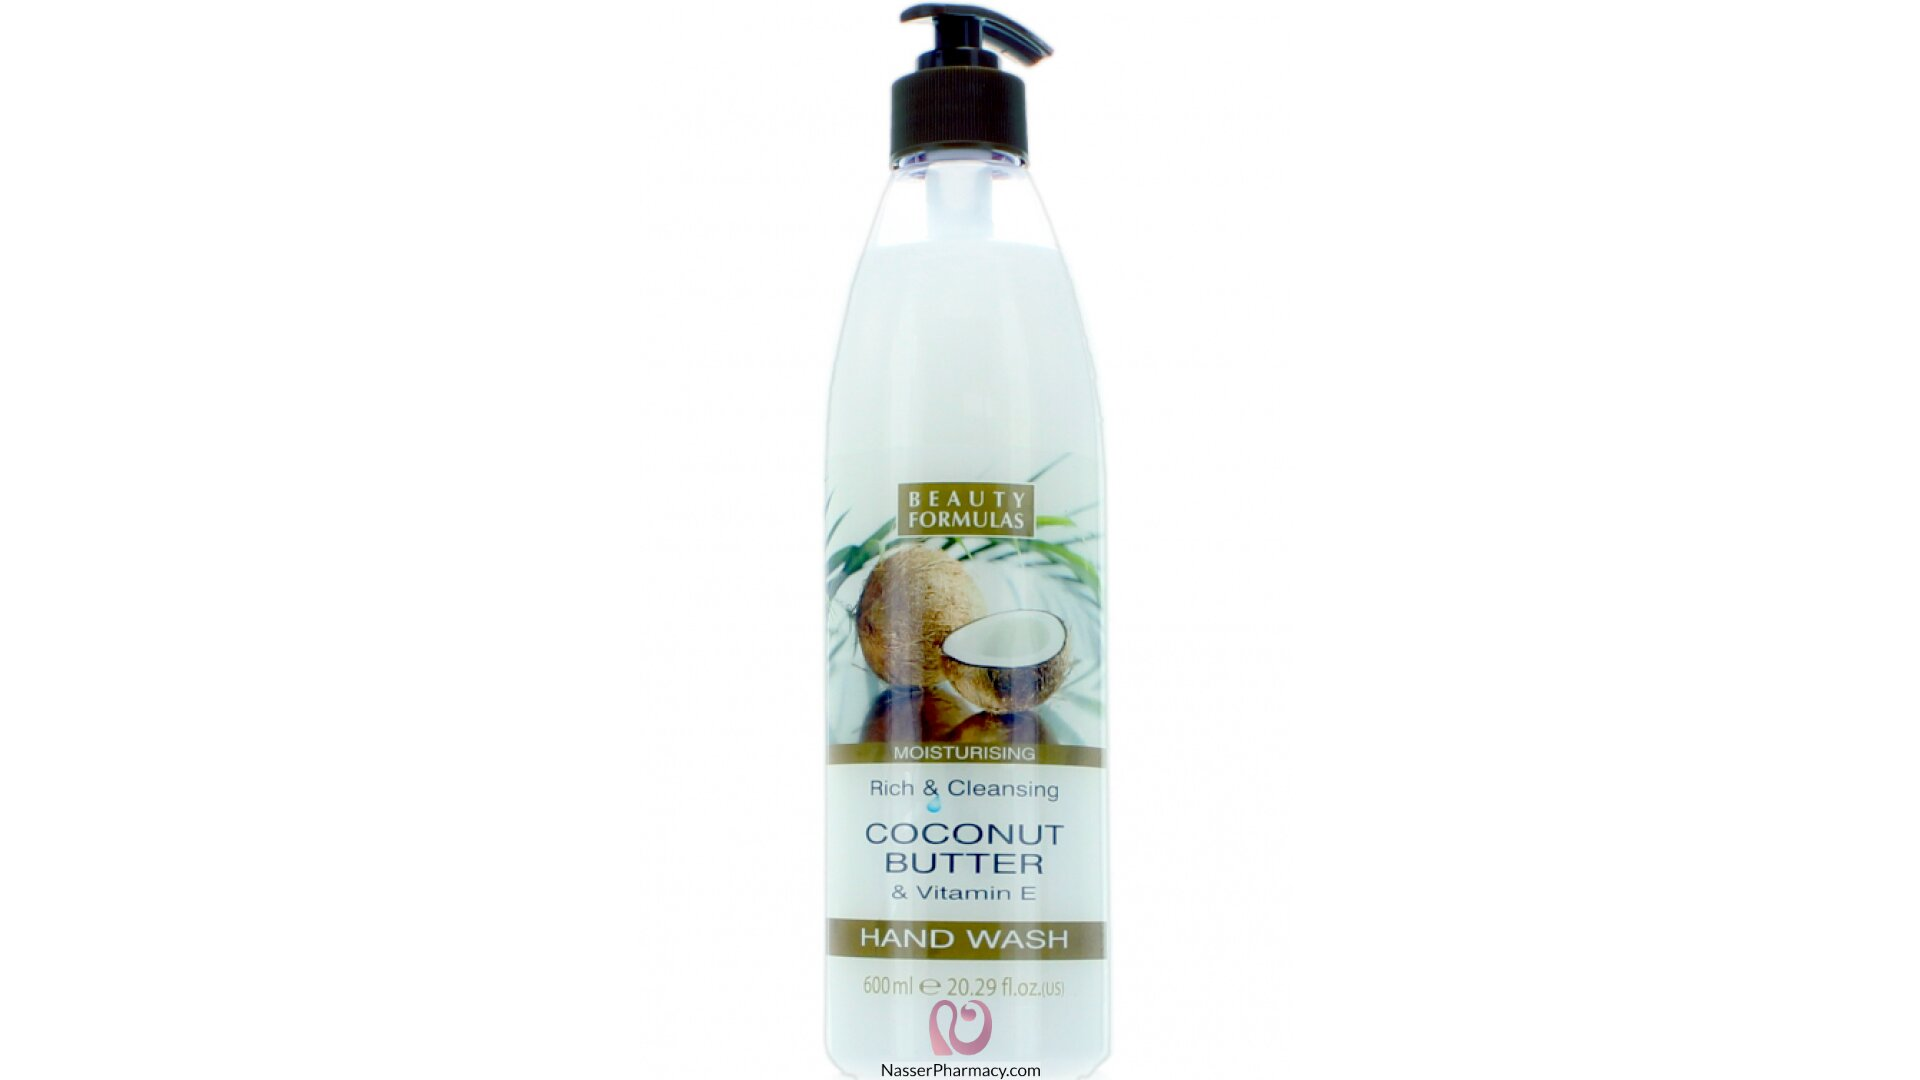 Https Bh En Bath Amp Shower Weekly 07 Cussons Baby Hair Lotion Avocado Ampamp Pro Vit B 100 Ml Beauty Formulas Moisturising Rich And Cleansing Coconut Butter Vitamin E Hand Wash 600ml 53362 1920x1080